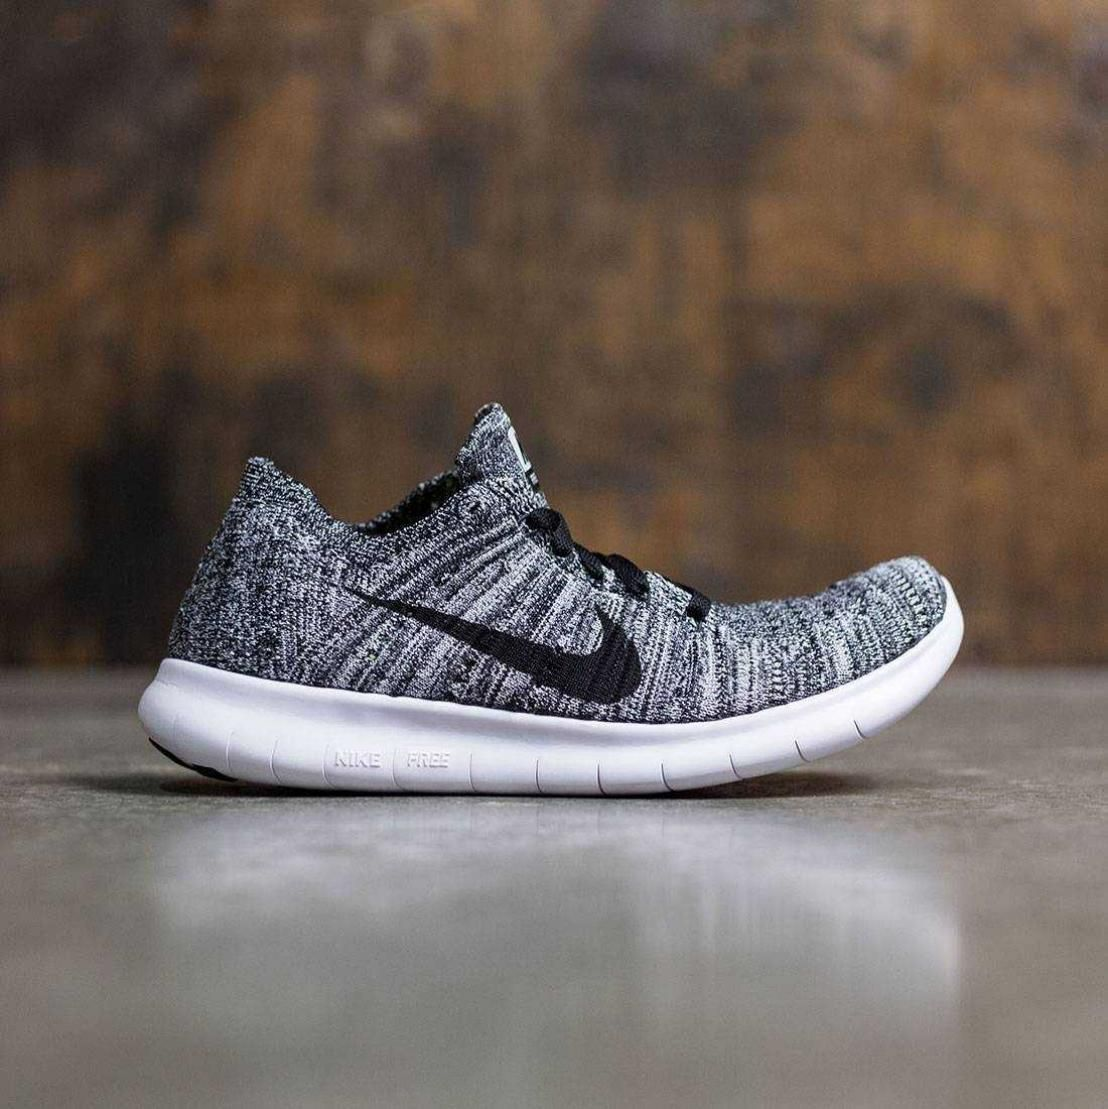 c1074bac24c3 ... low cost womens nike free run rn flyknit running sneakers white black  831070 100 ba3a0 4f2c1